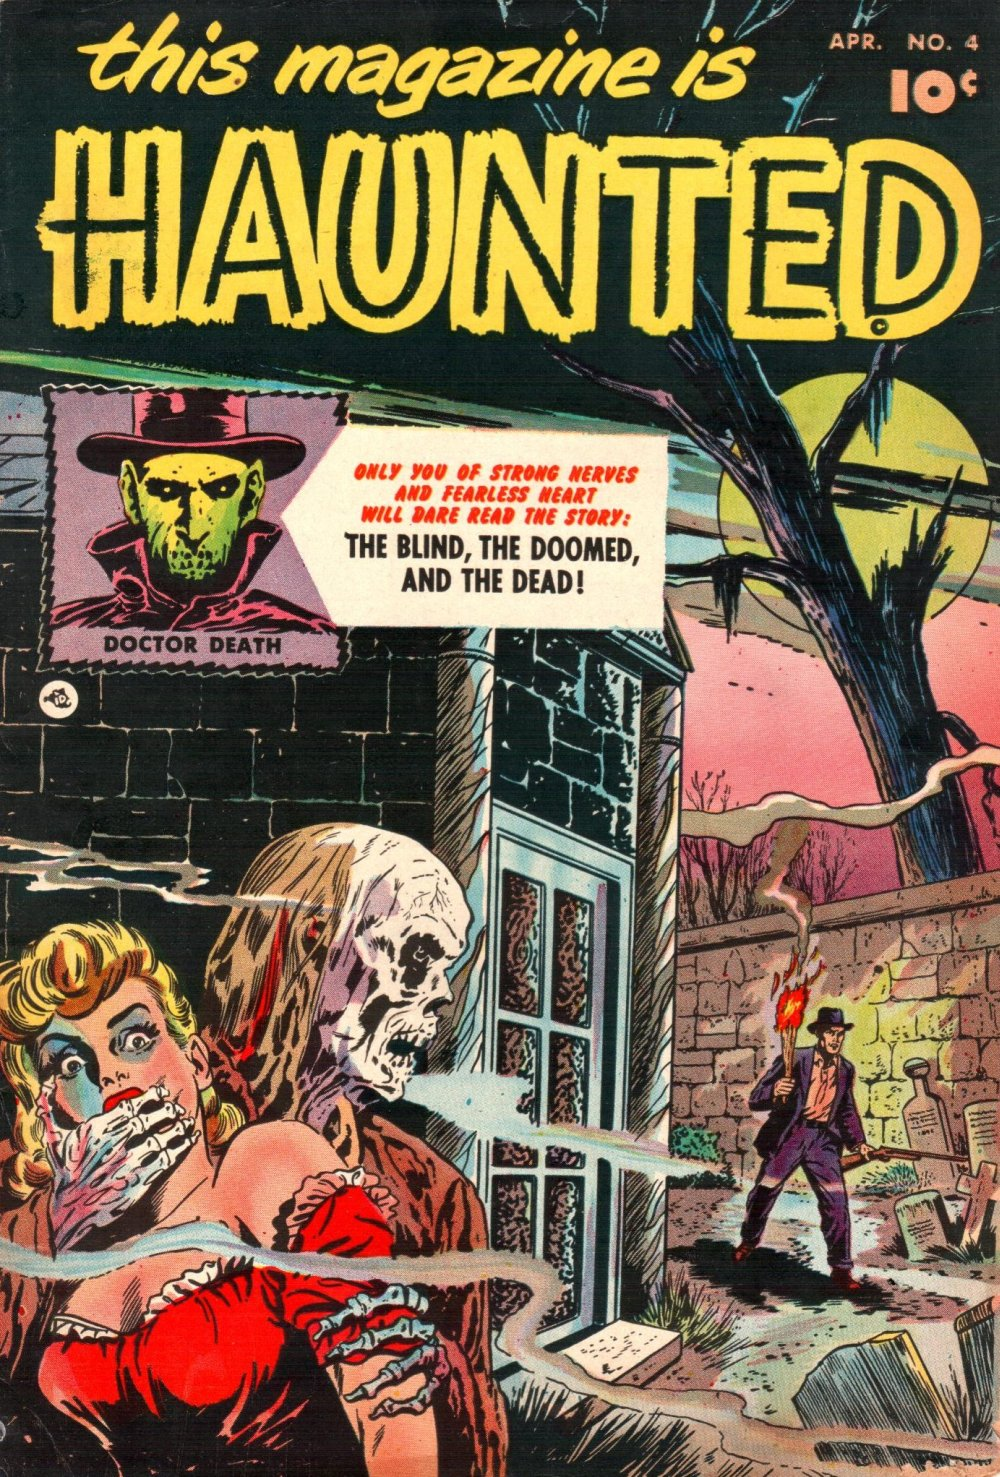 This Magazine Is Haunted [UNKNOWN] V1 0004.jpg